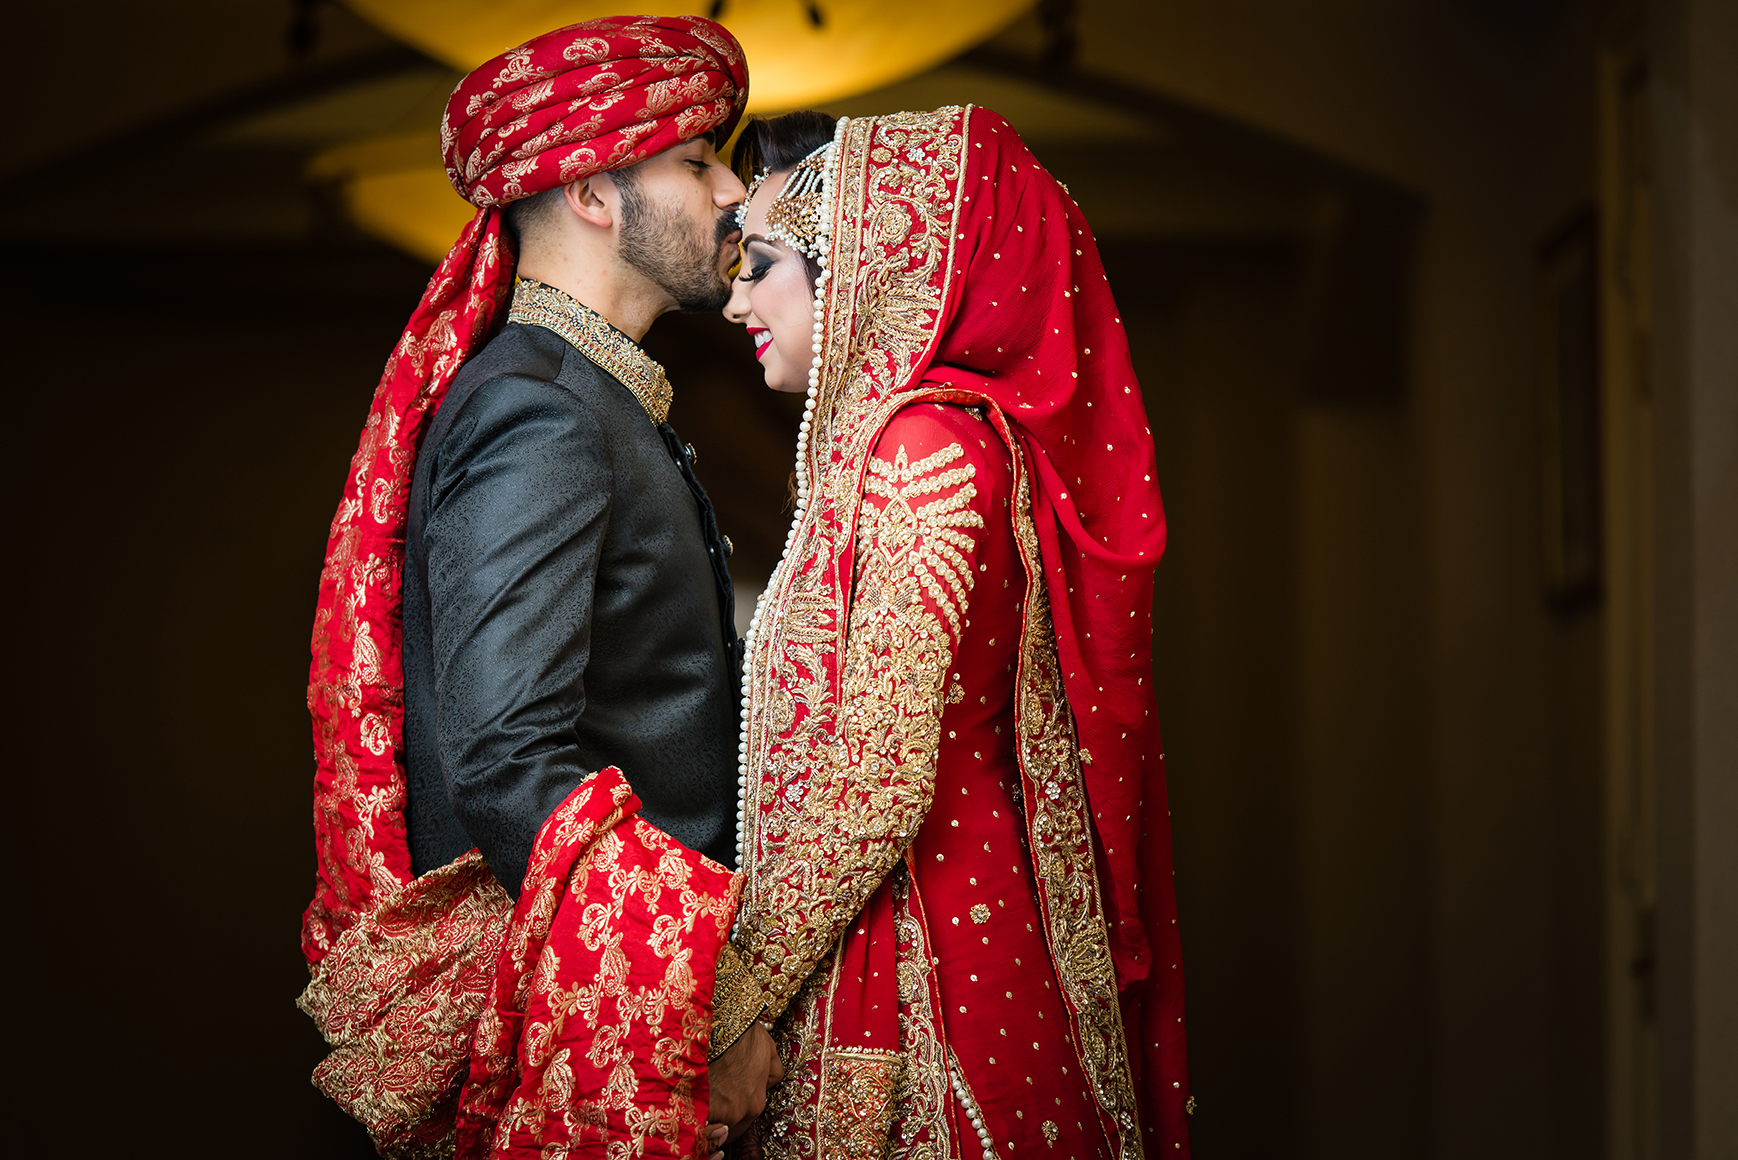 south_asian_wedding_photography_dhoom_studio_new_york27 SOUTH ASIAN WEDDINGS